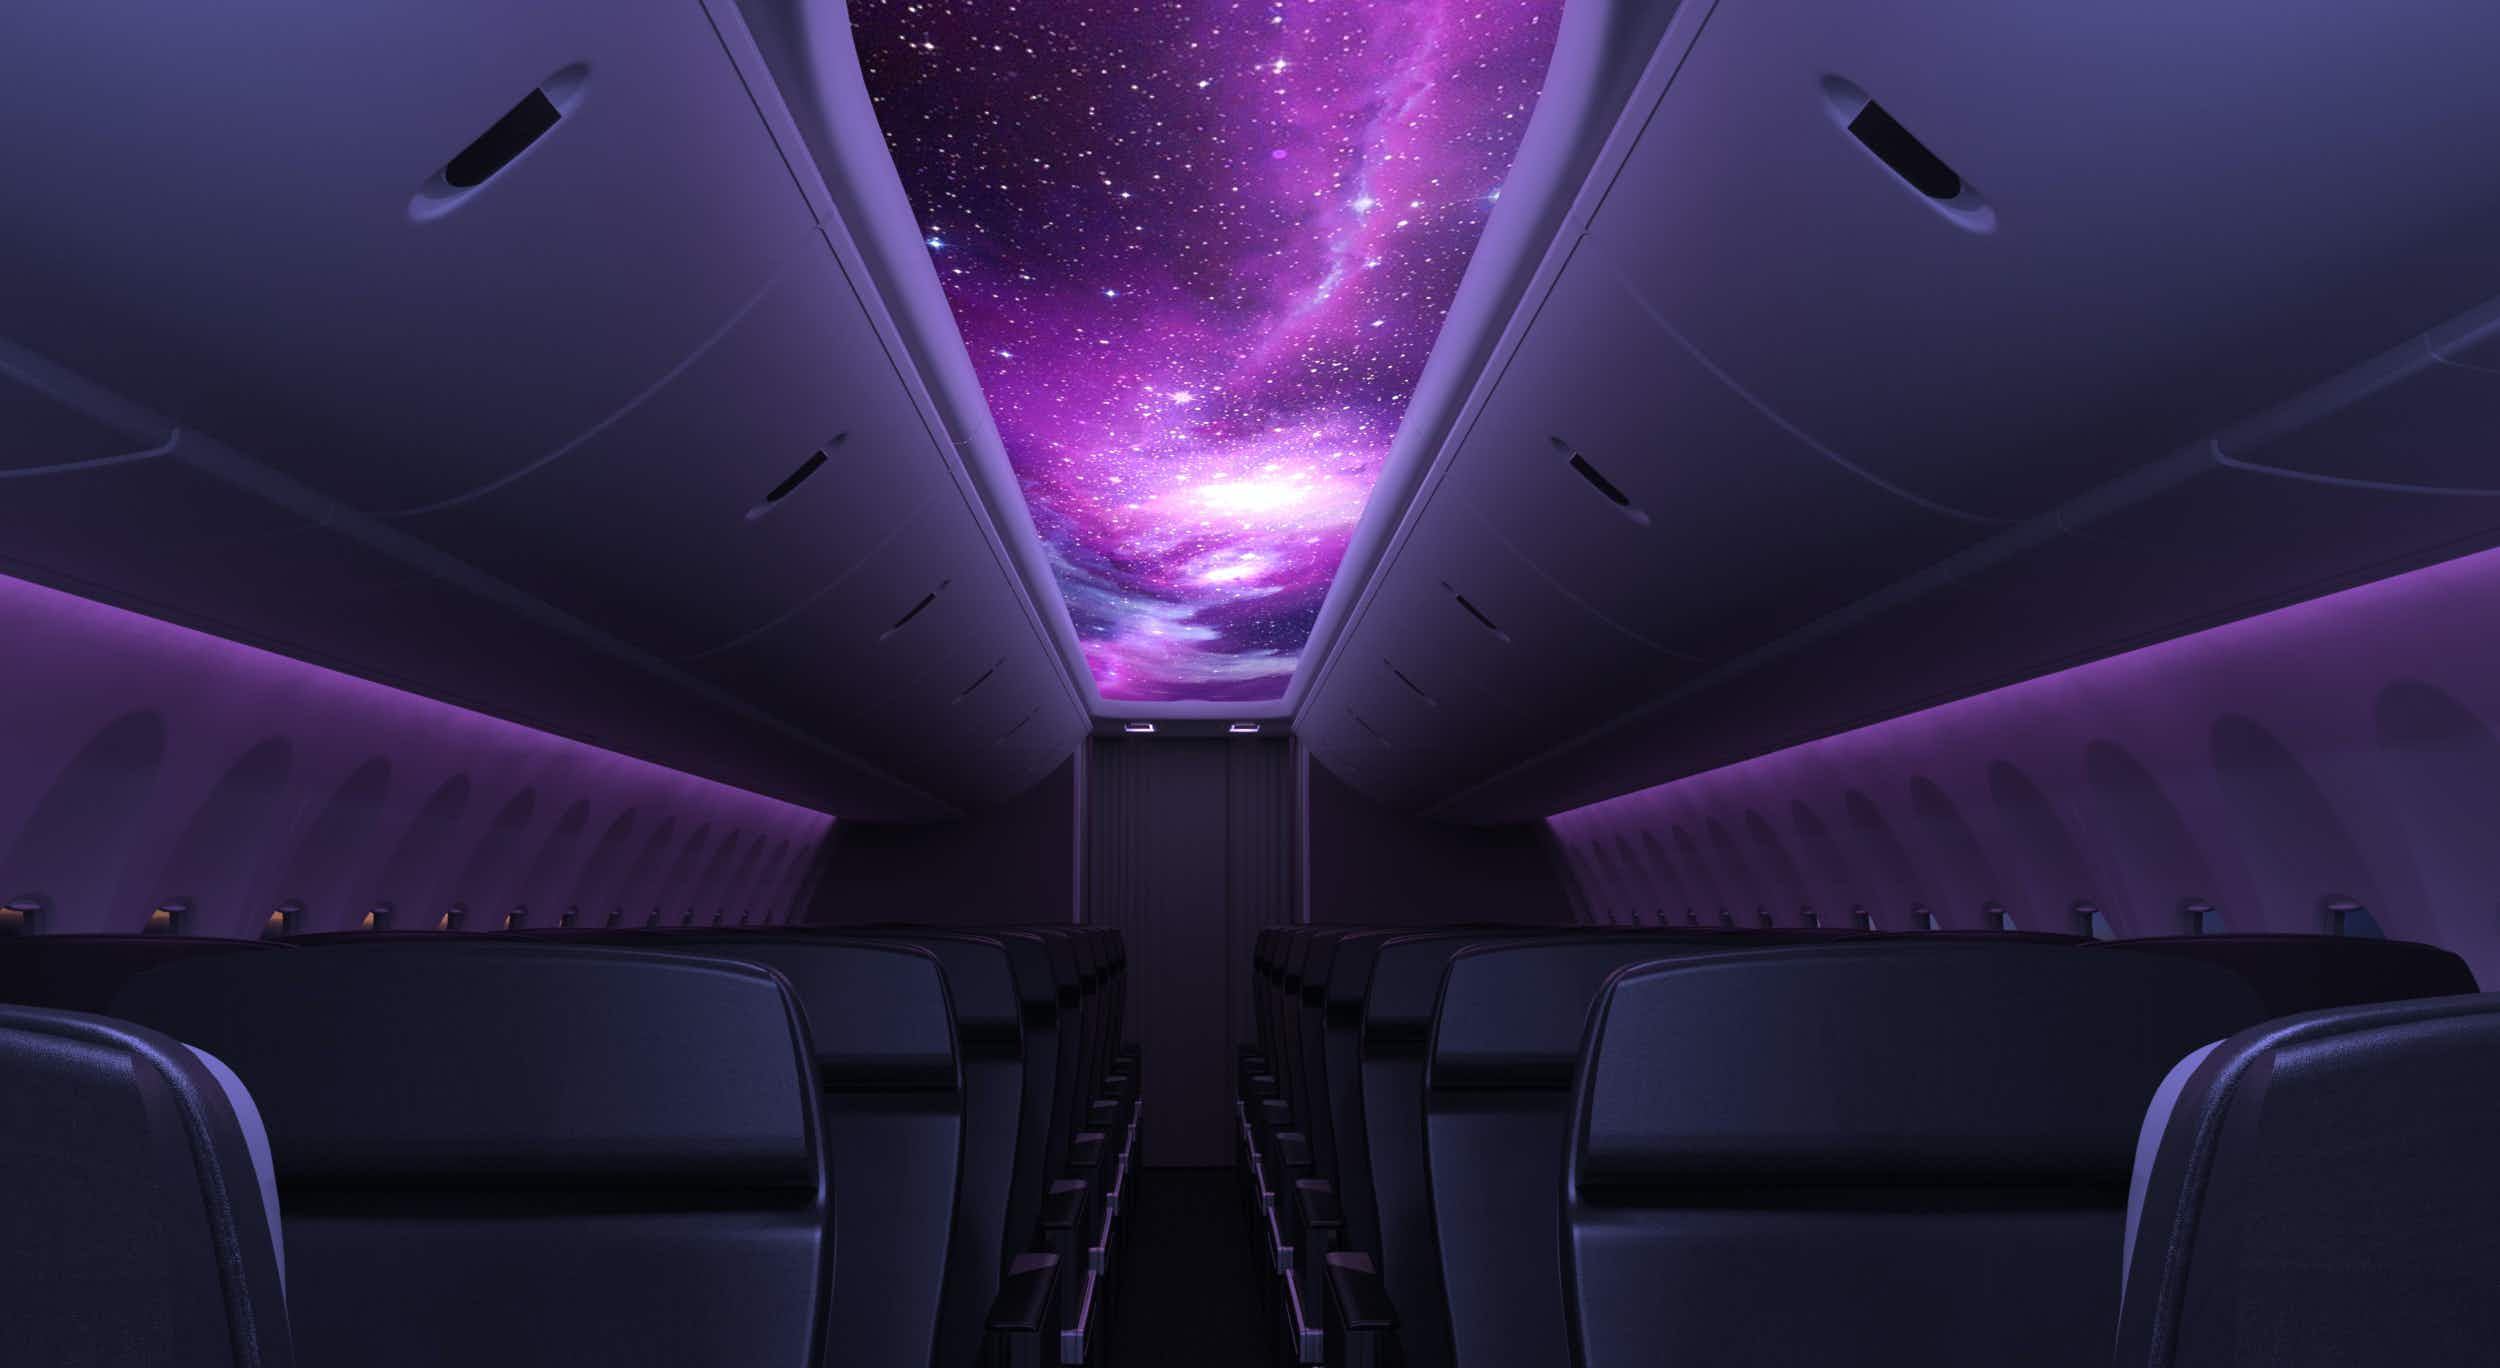 Hotel rooms in the sky - see how you'll be flying in the future